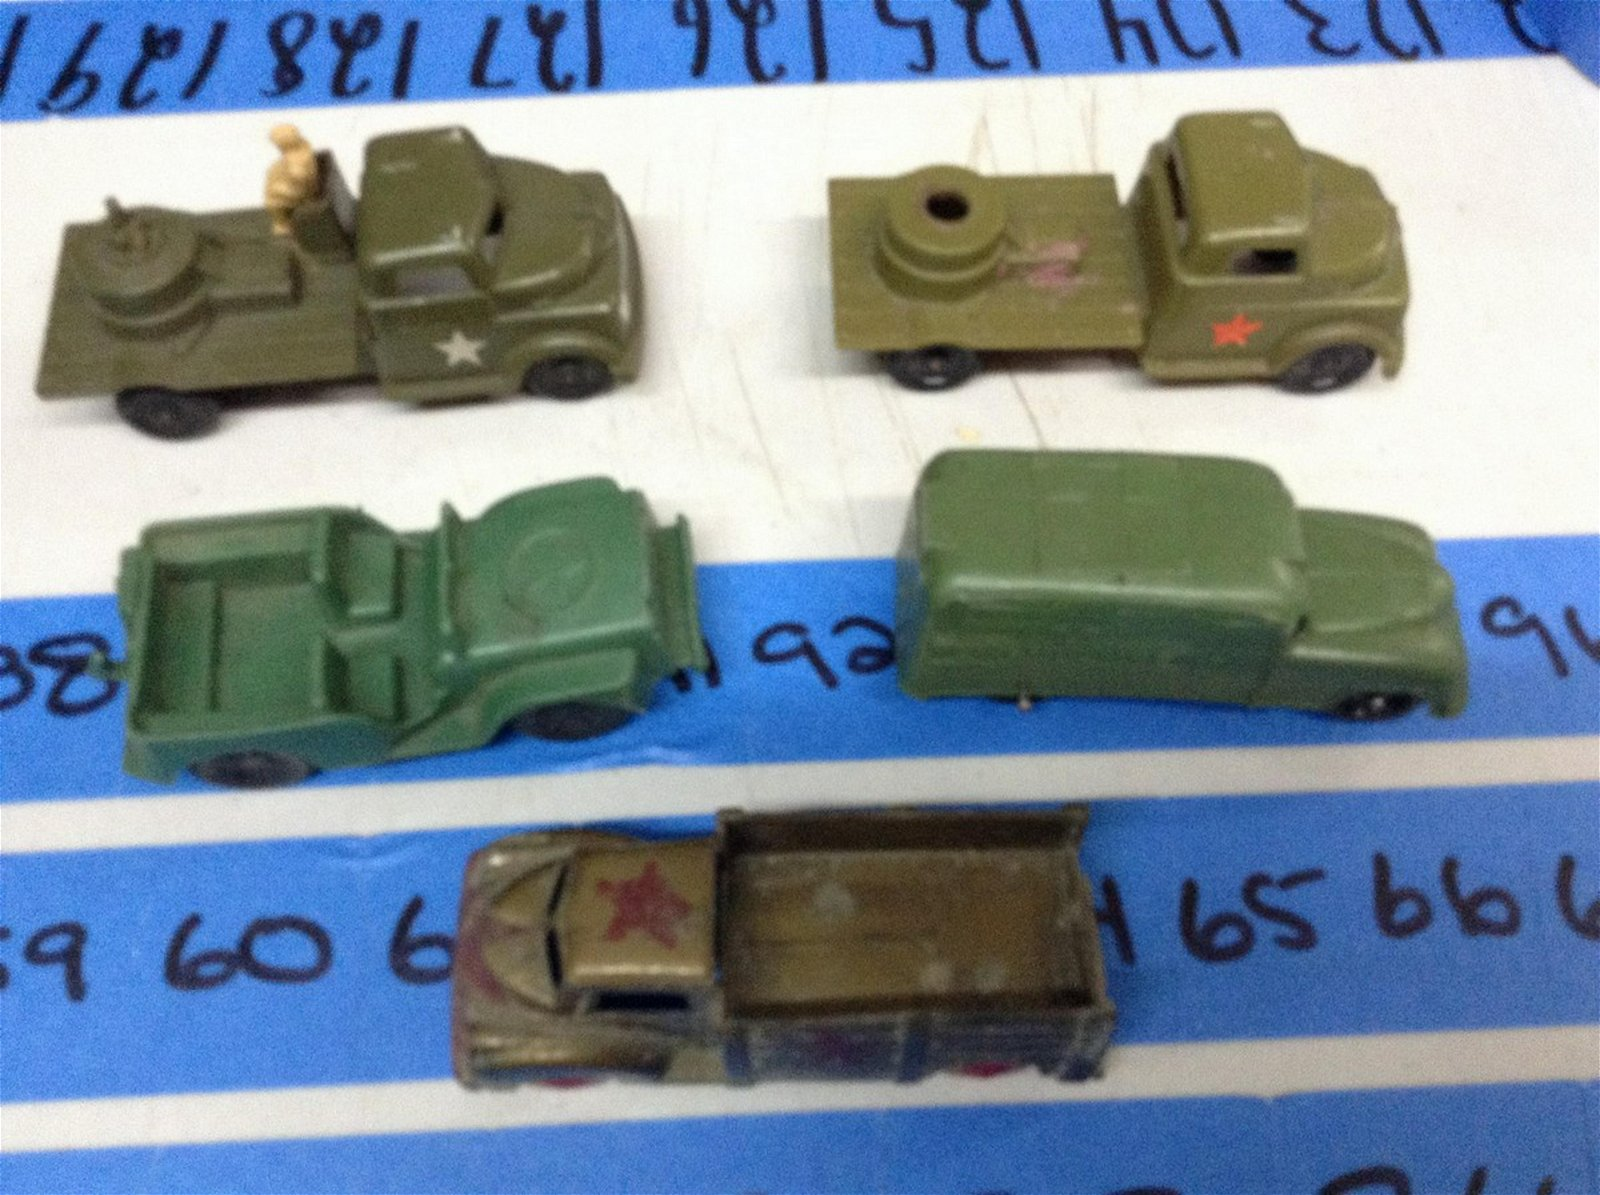 Vintage Lapin Military vehicles